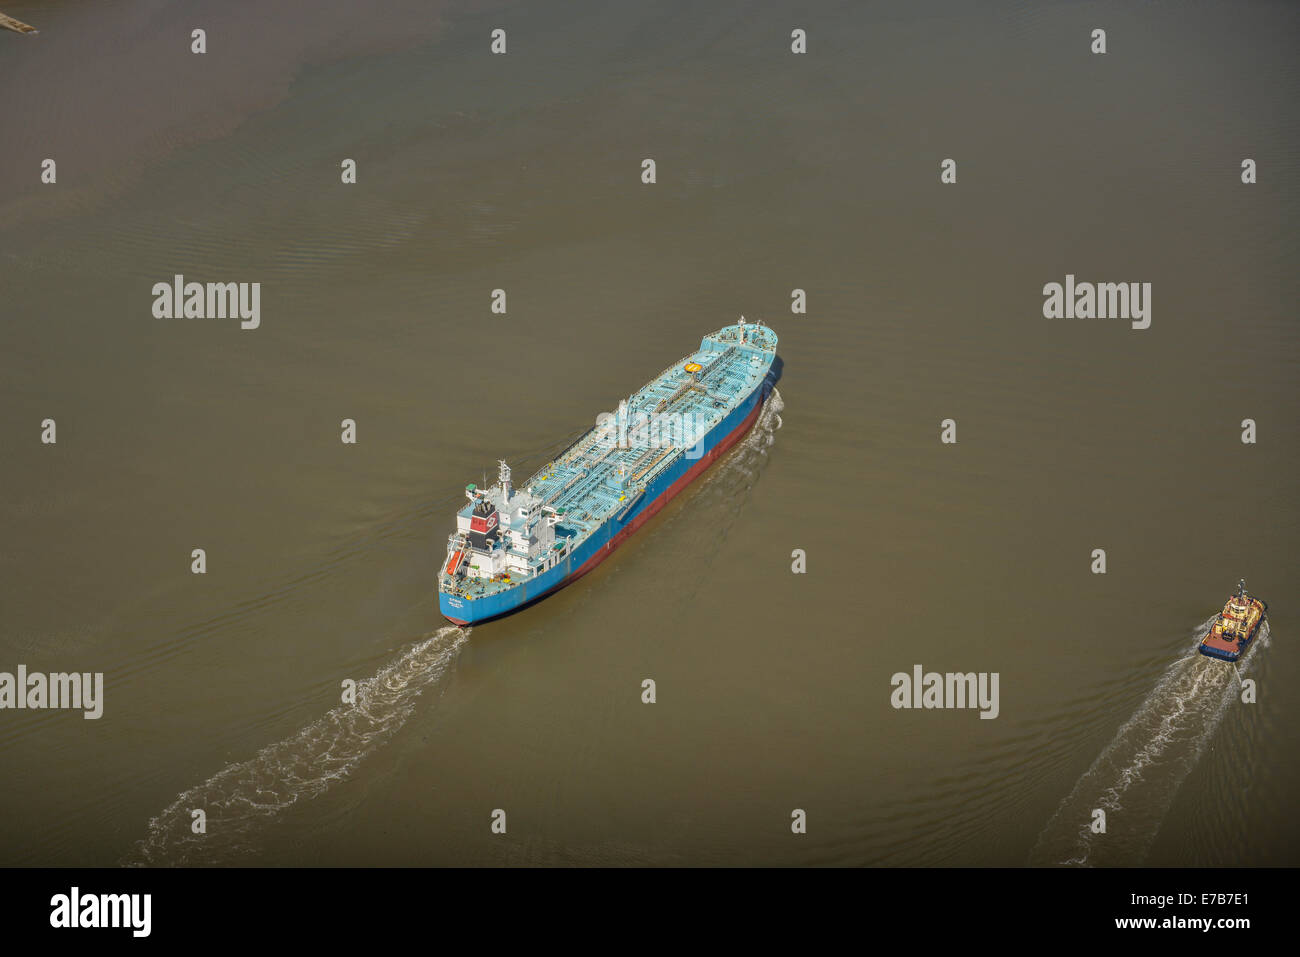 An aerial view of a bulk freighter in the River Mersey just off Birkenhead. - Stock Image